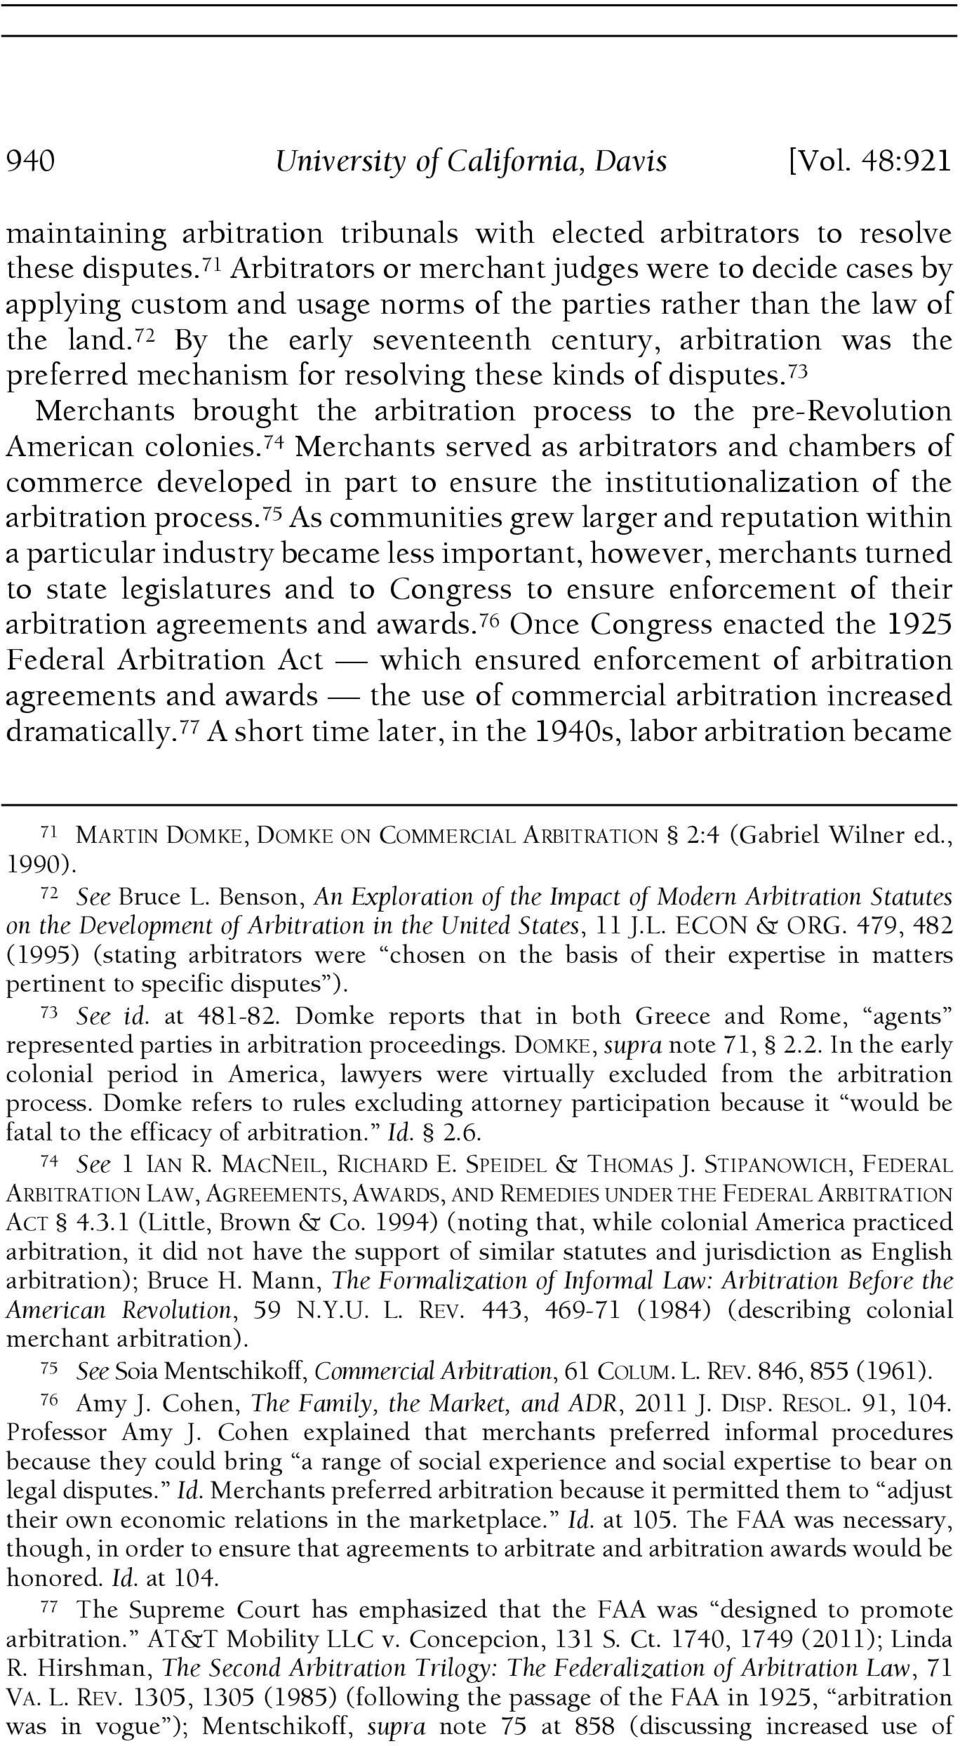 72 By the early seventeenth century, arbitration was the preferred mechanism for resolving these kinds of disputes.